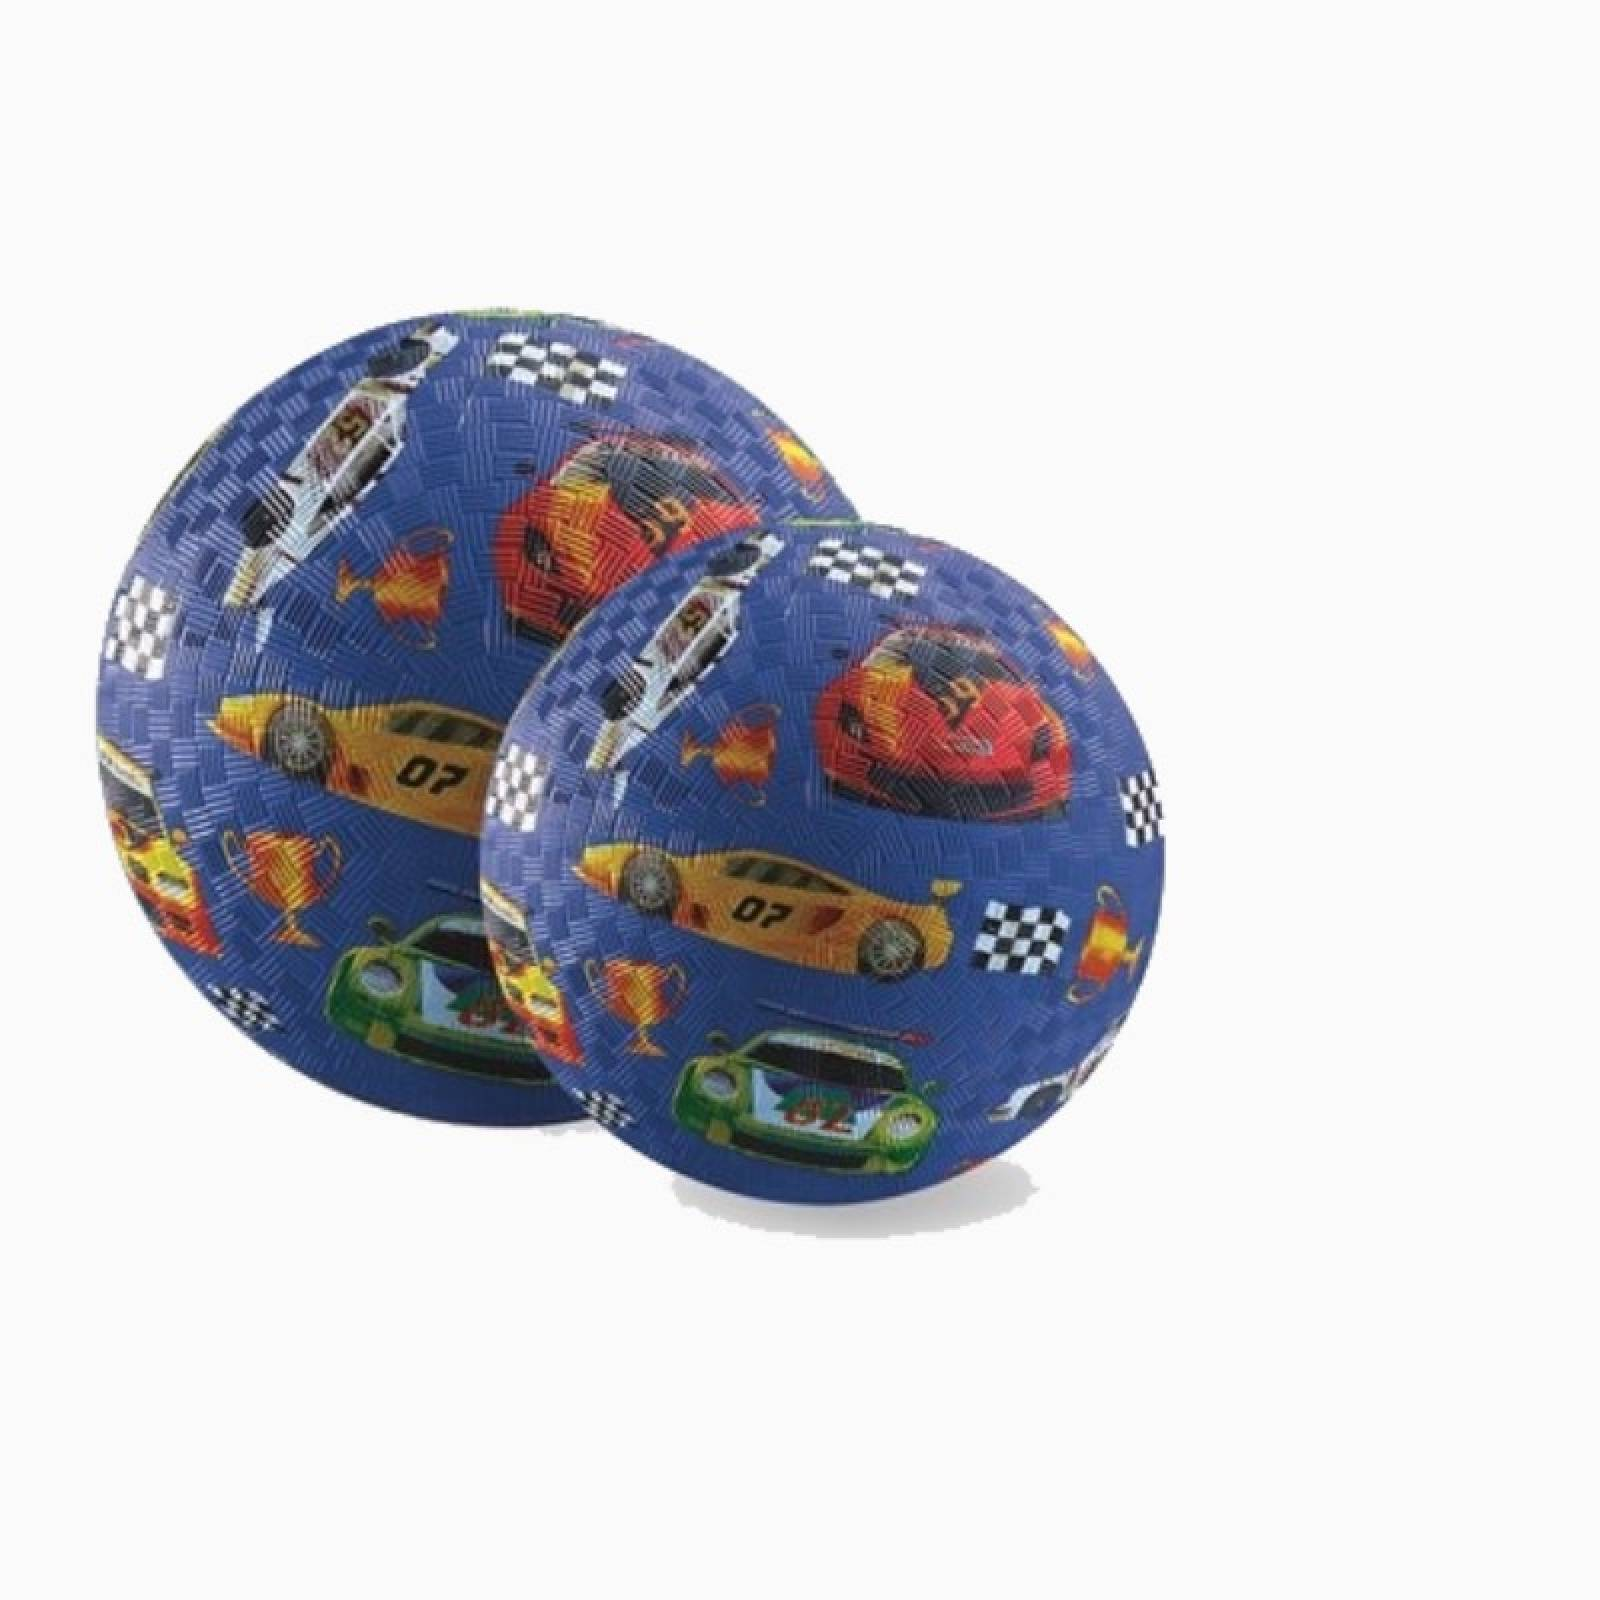 At The Races - Small Rubber Picture Ball 13cm